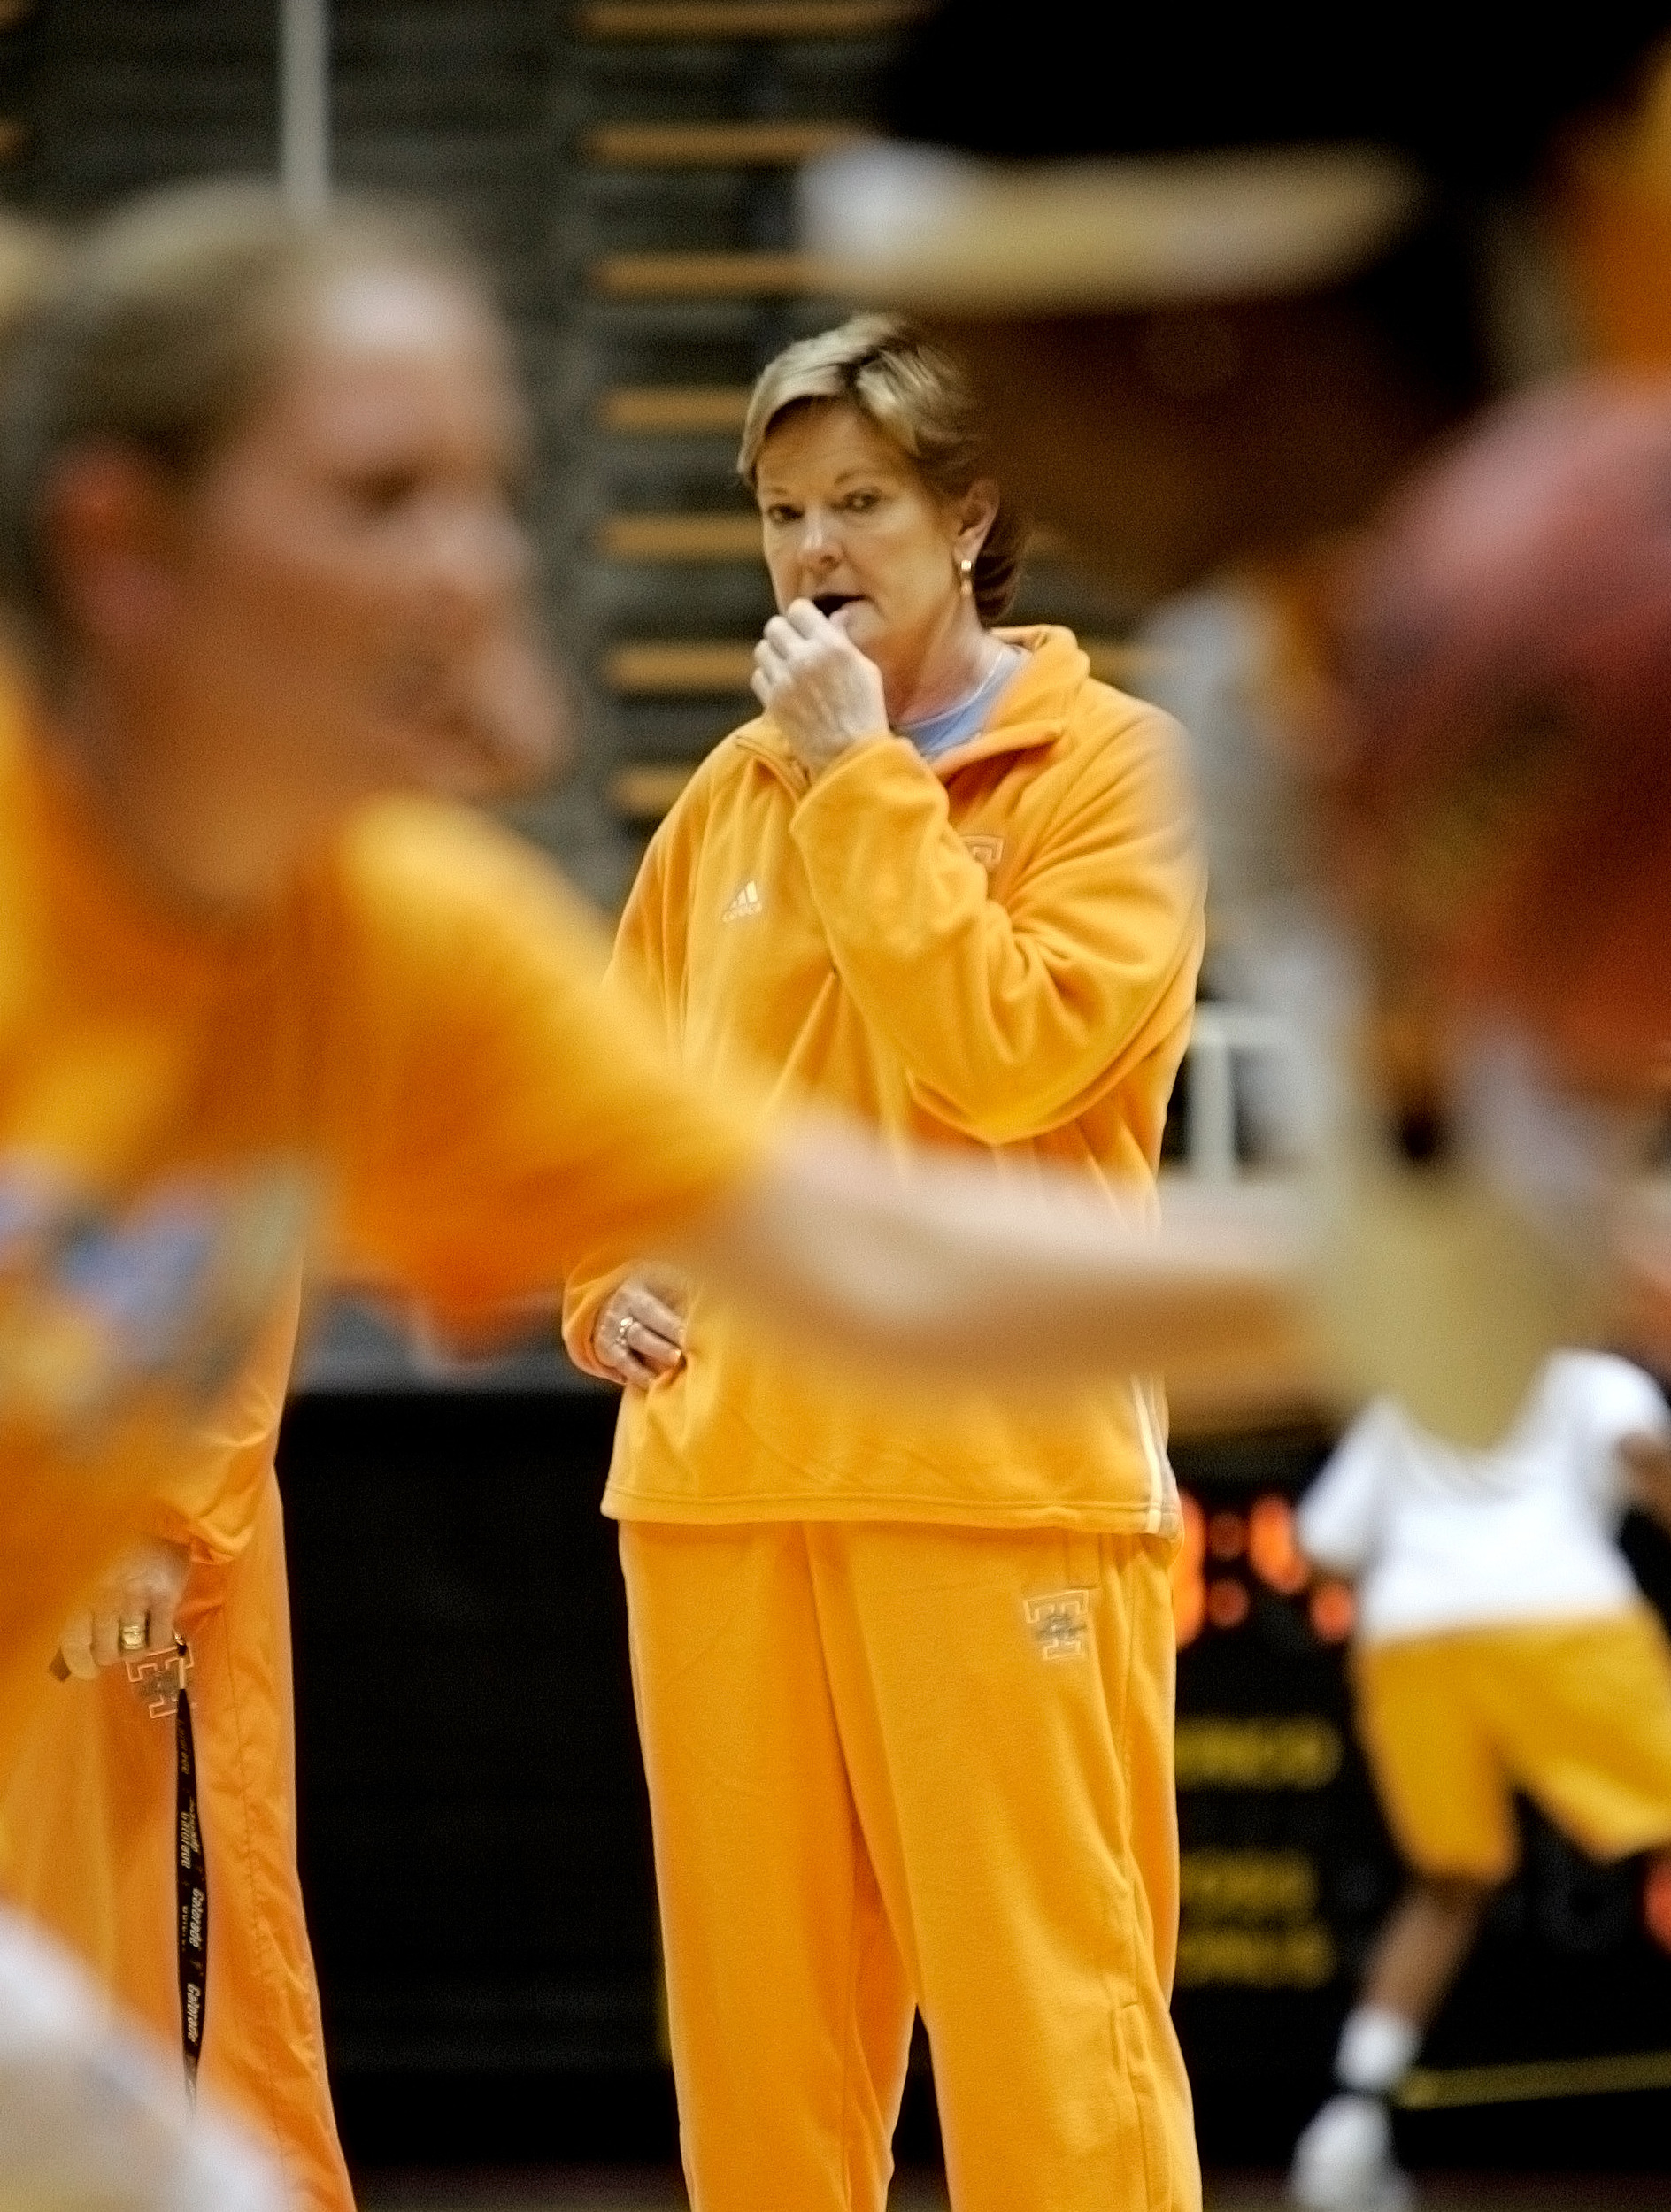 Pat Summitt watches the Lady Vols practice at Mackey Arena Saturday, March 22, 2008 before the NCAA women's basketball tournament subregionals in West Lafayette, Indiana.